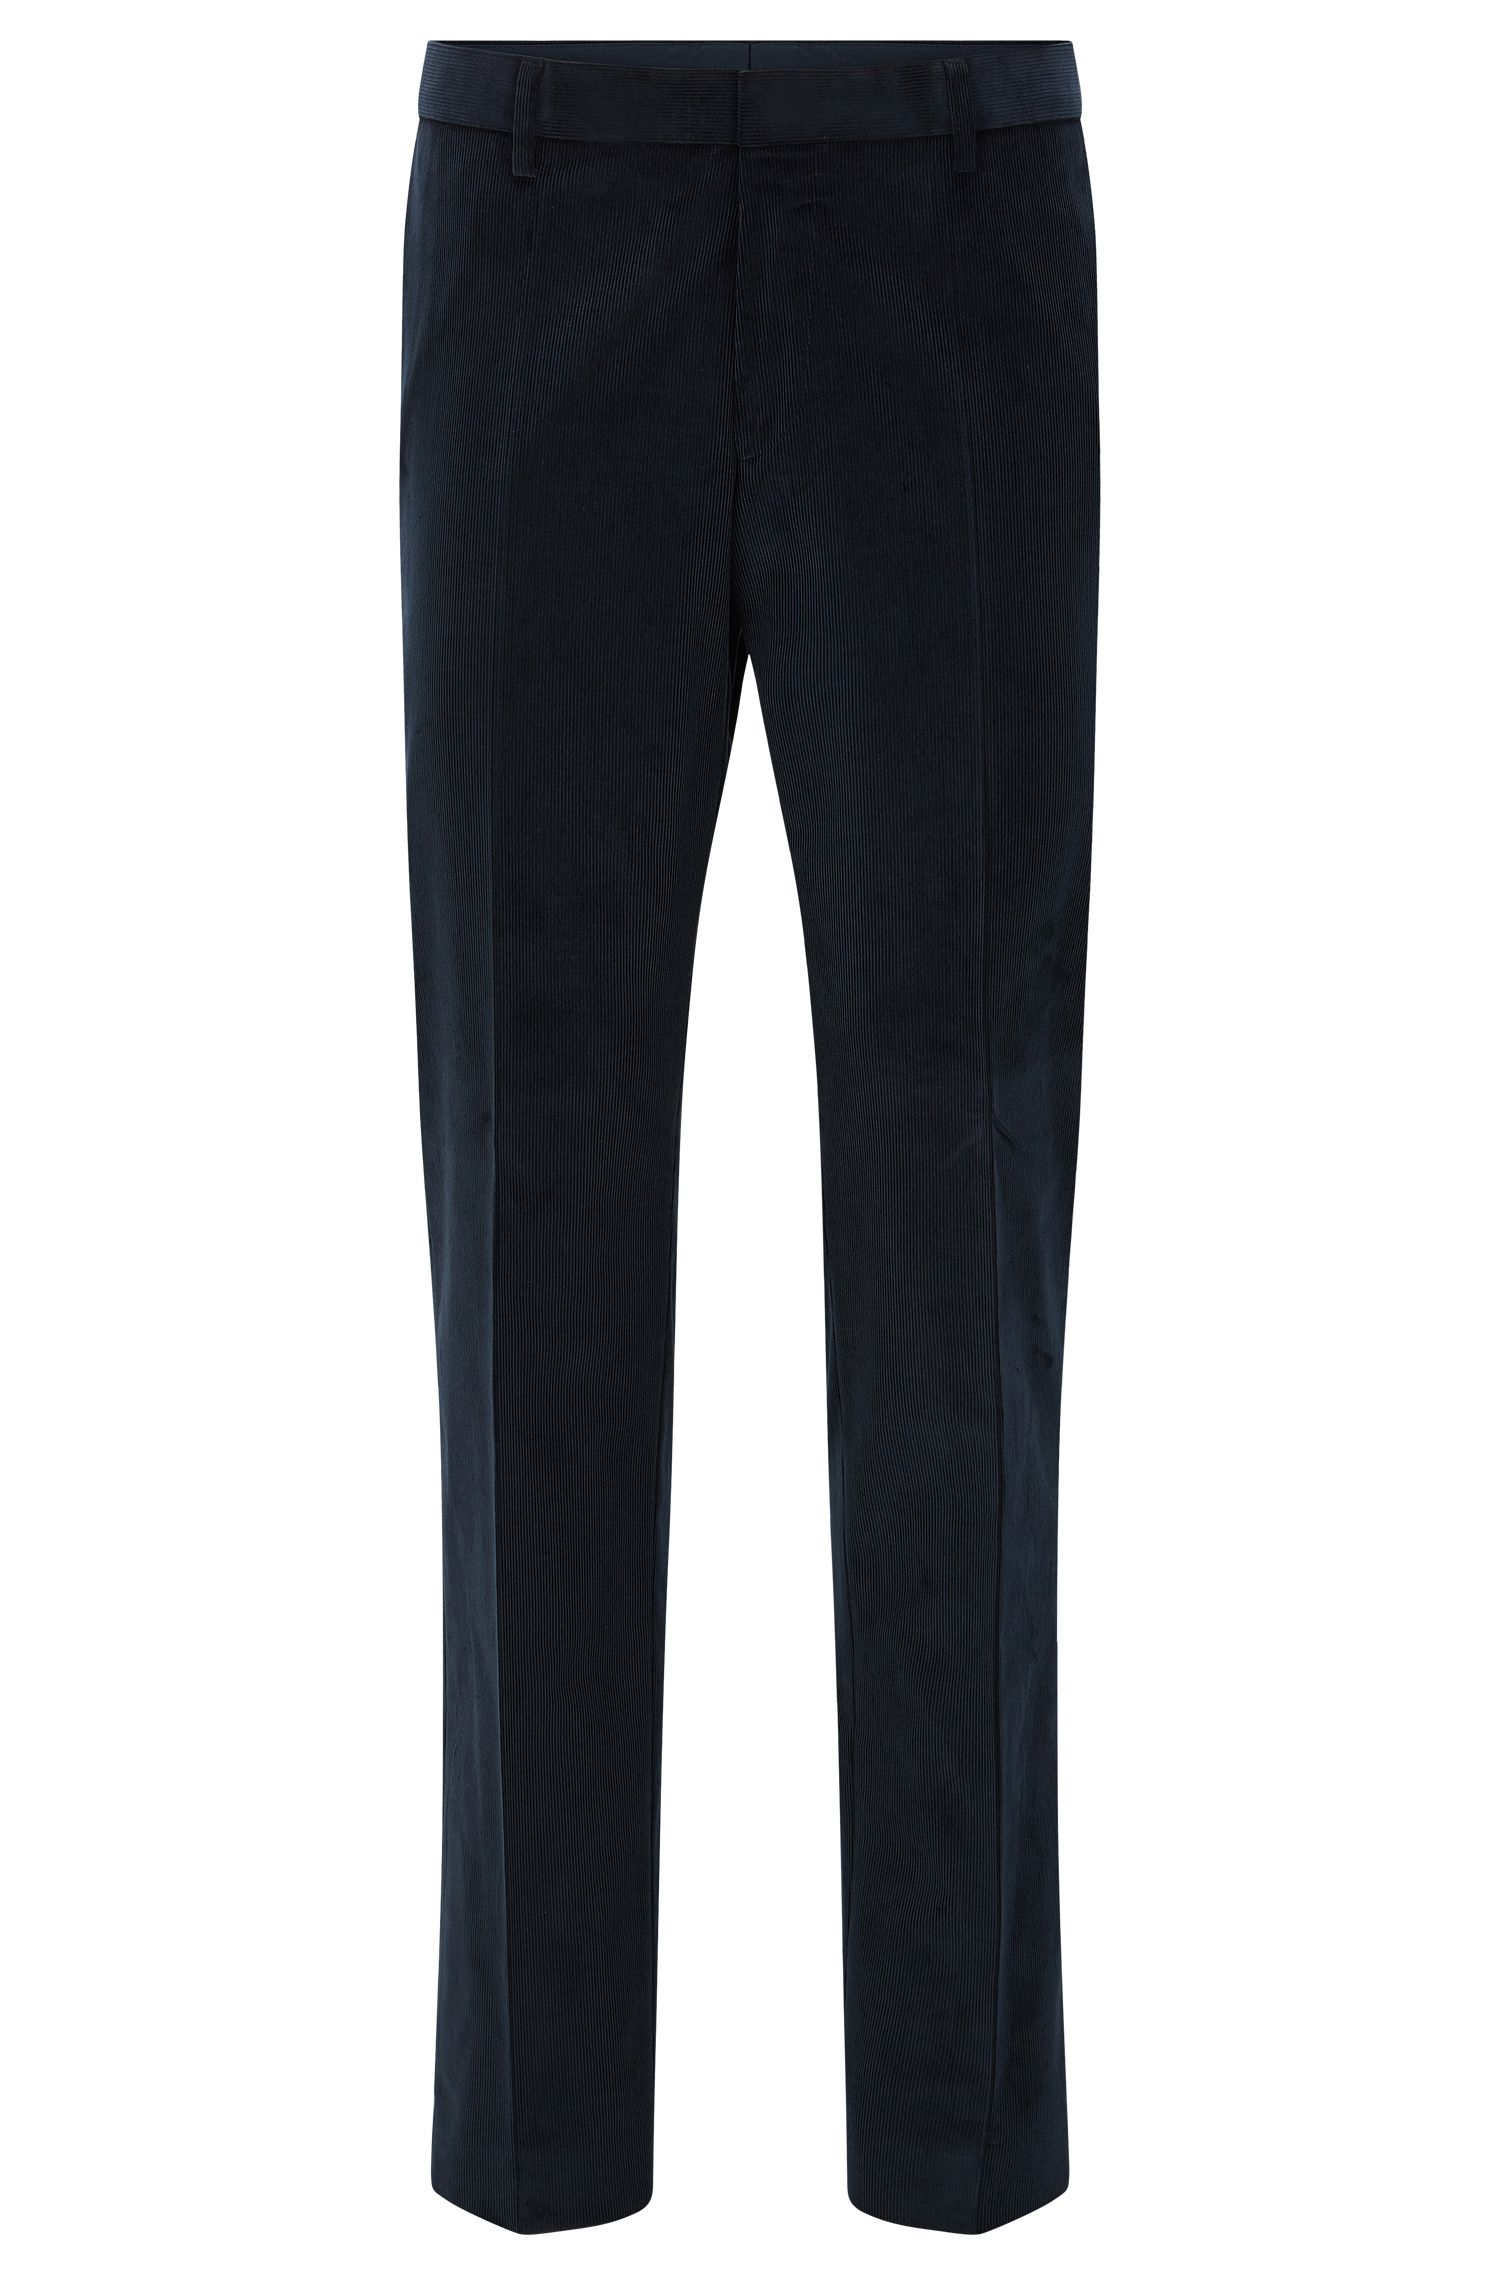 Pantalon en velours côtelé Slim Fit en coton stretch : « Genesis2 »